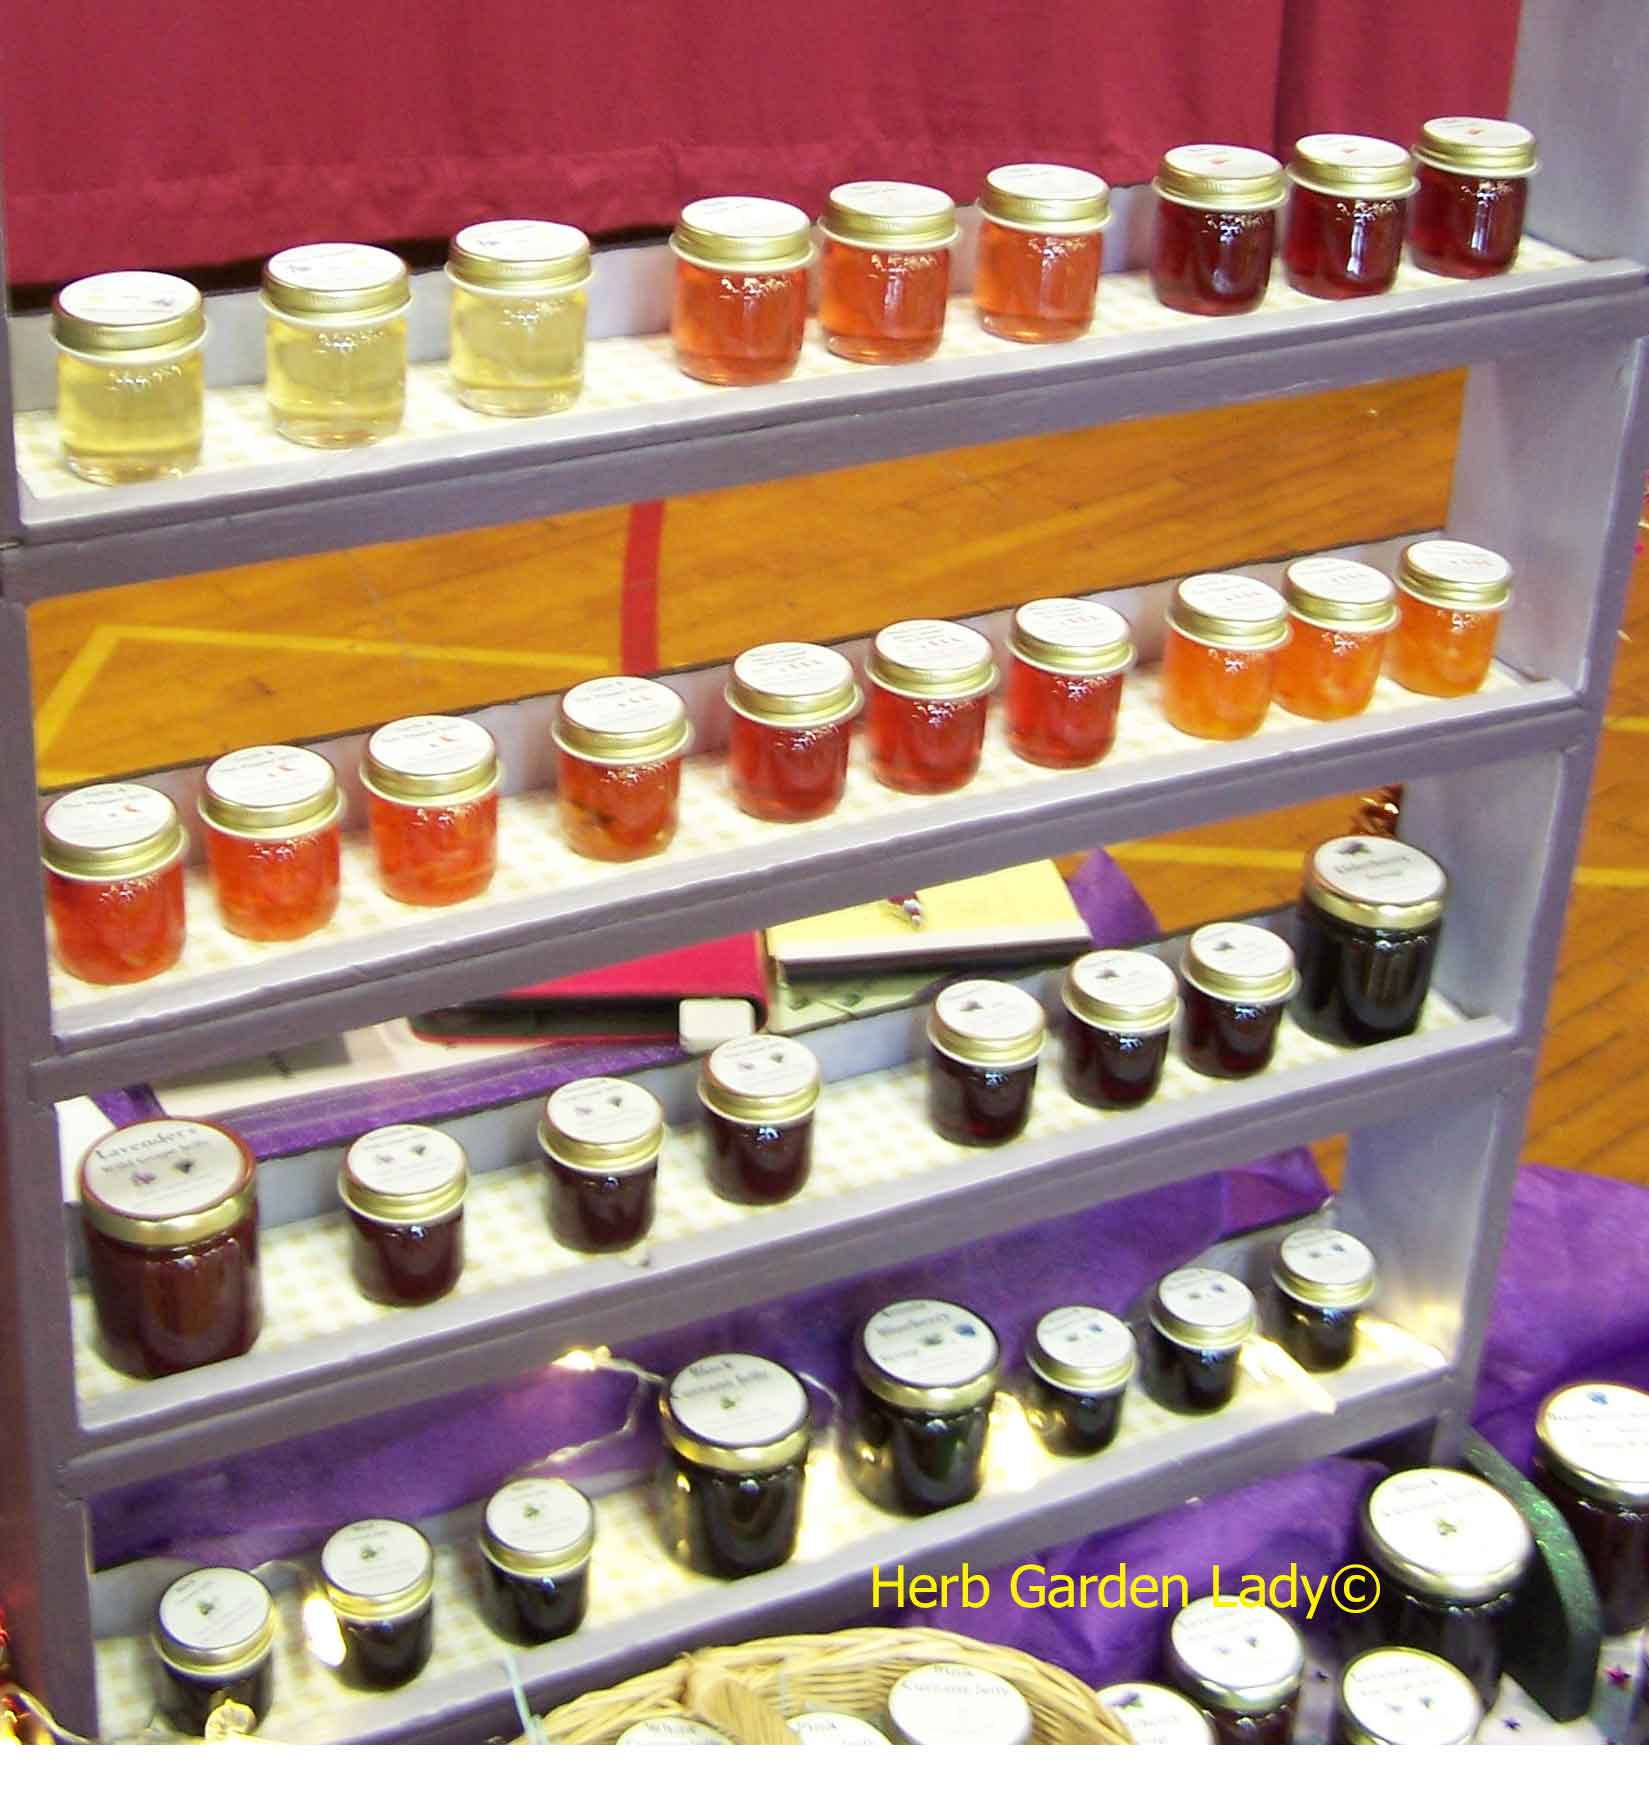 Herbal jellies and jams I sell at the Farmers Market.